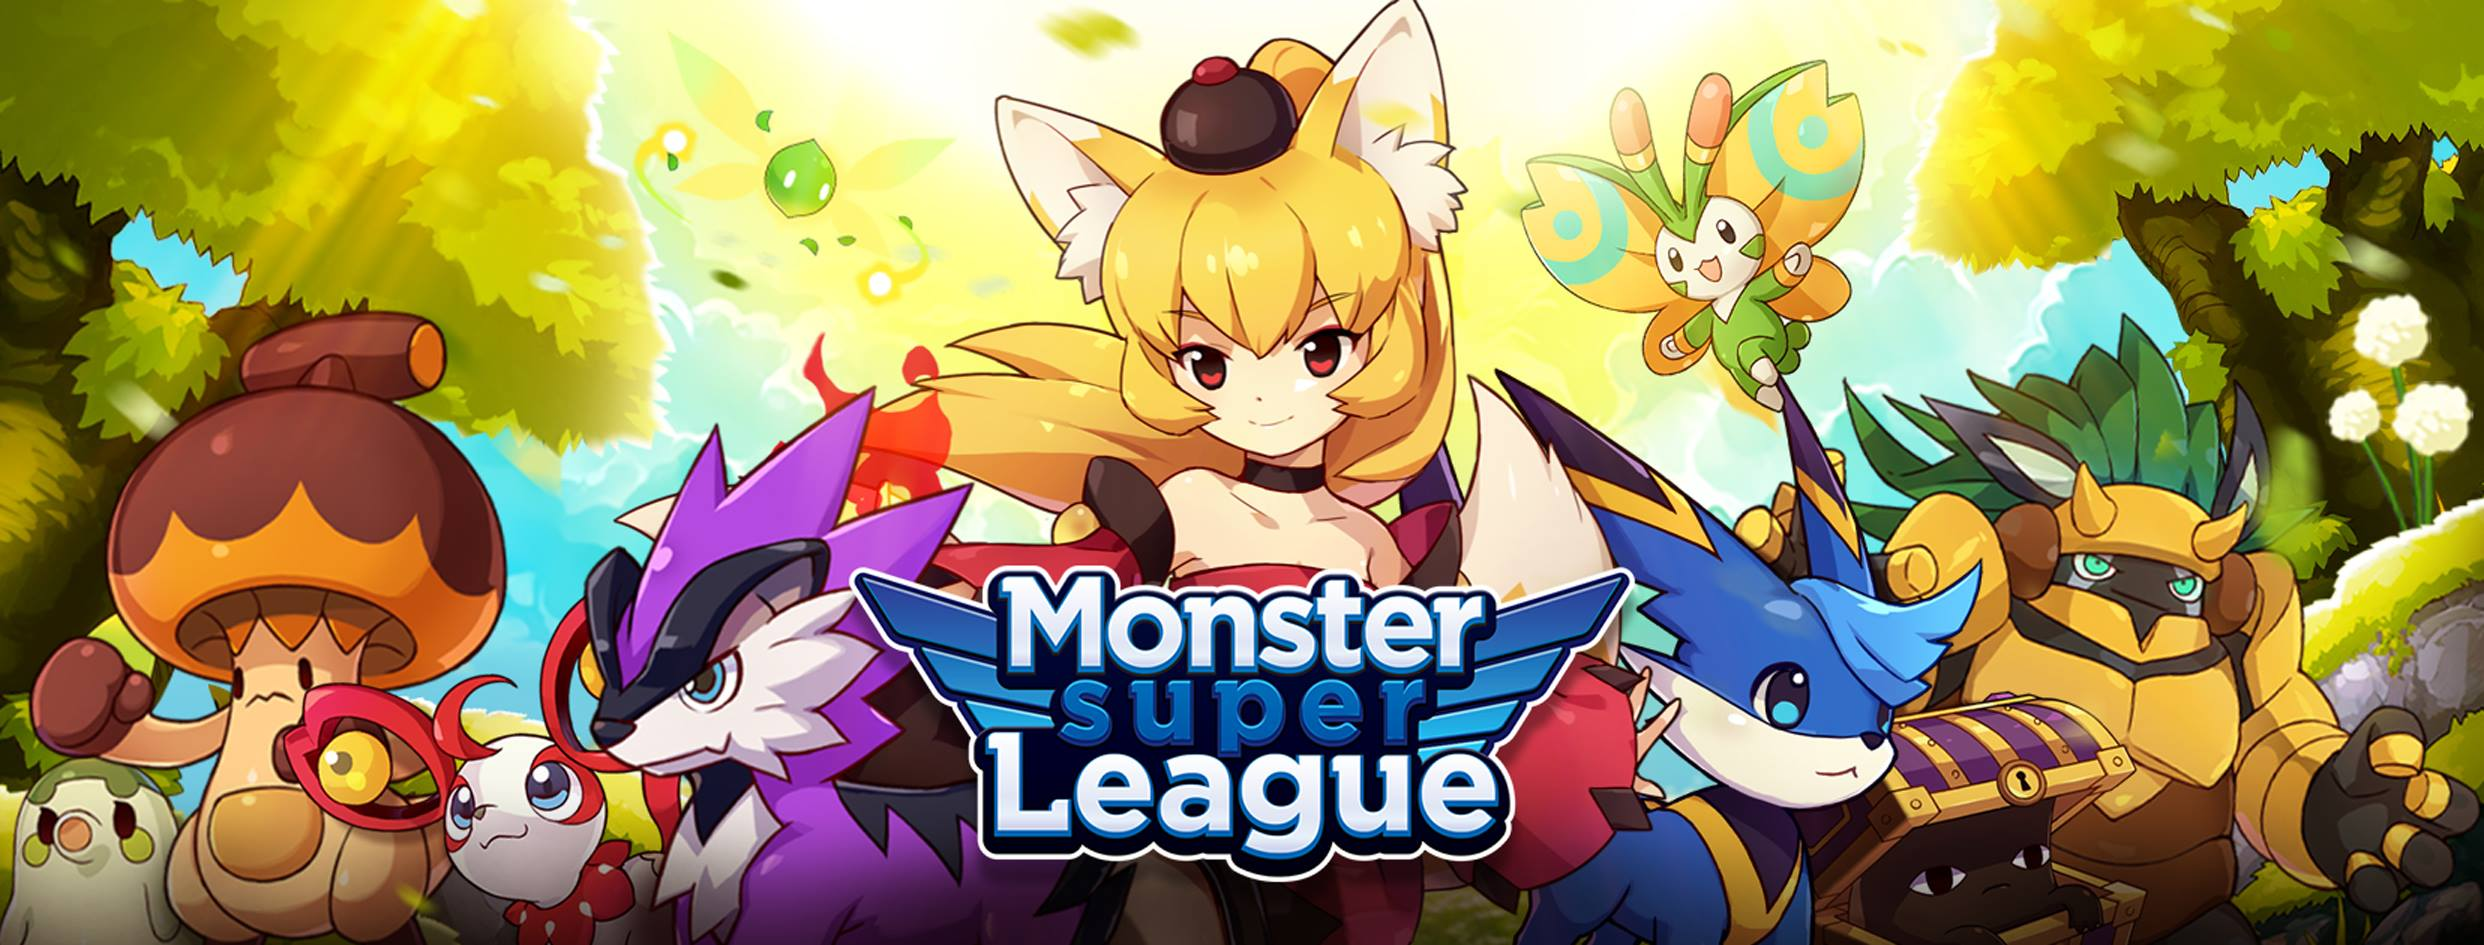 Monster Super League Club